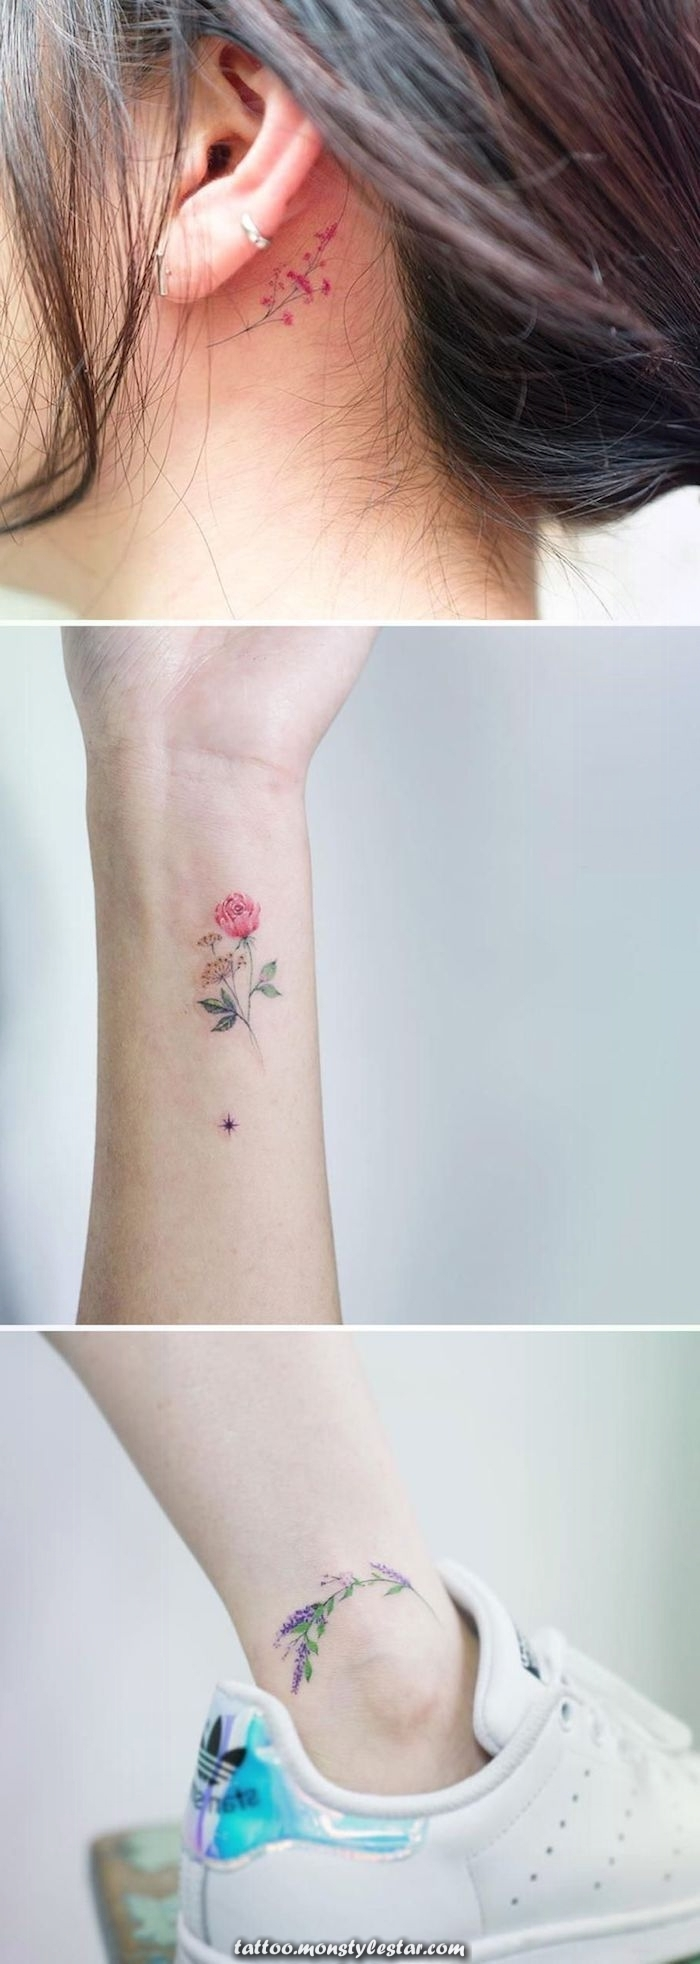 ▷ 1001 + Ideas and photos about Tattoos Woman - Sina Knauer